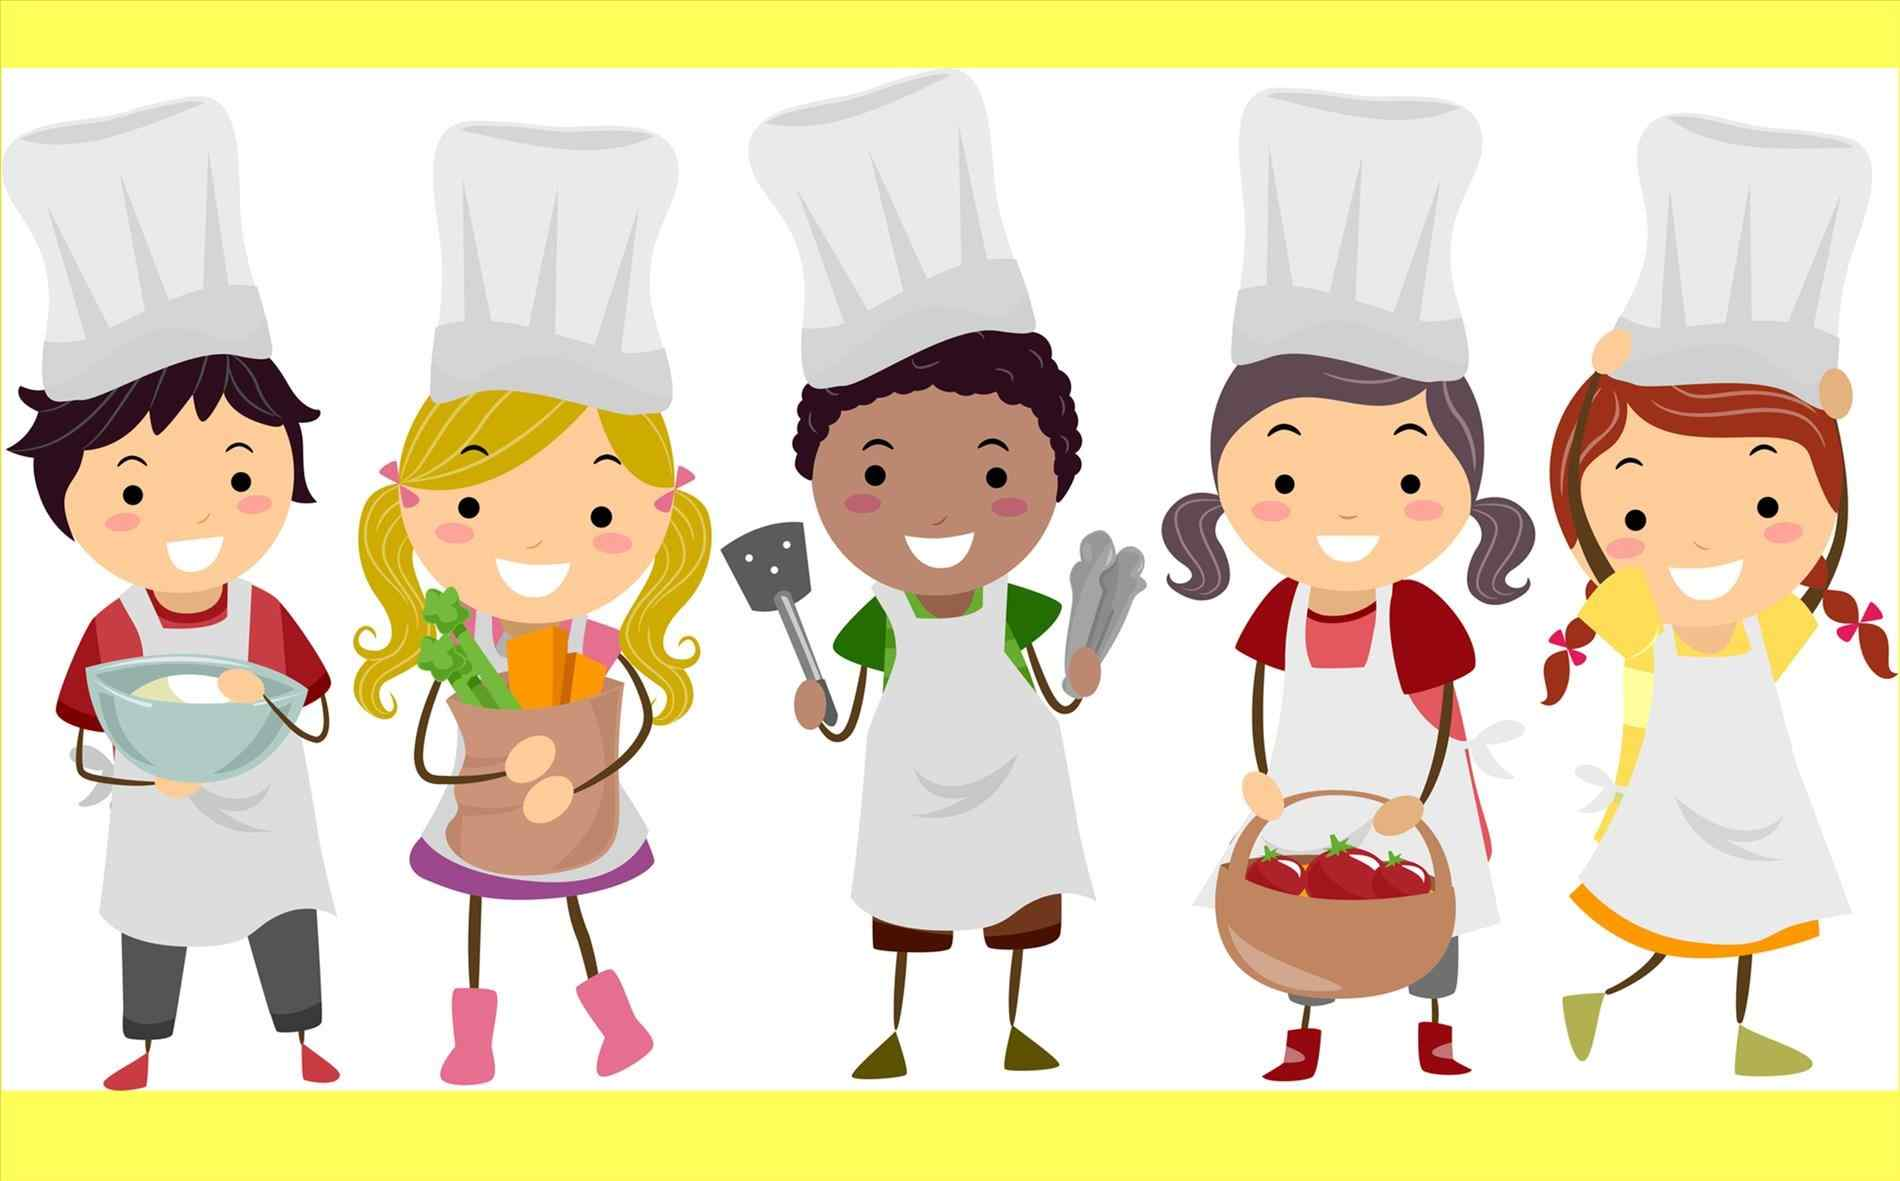 Baking clipart child. Kitchen kid pencil and